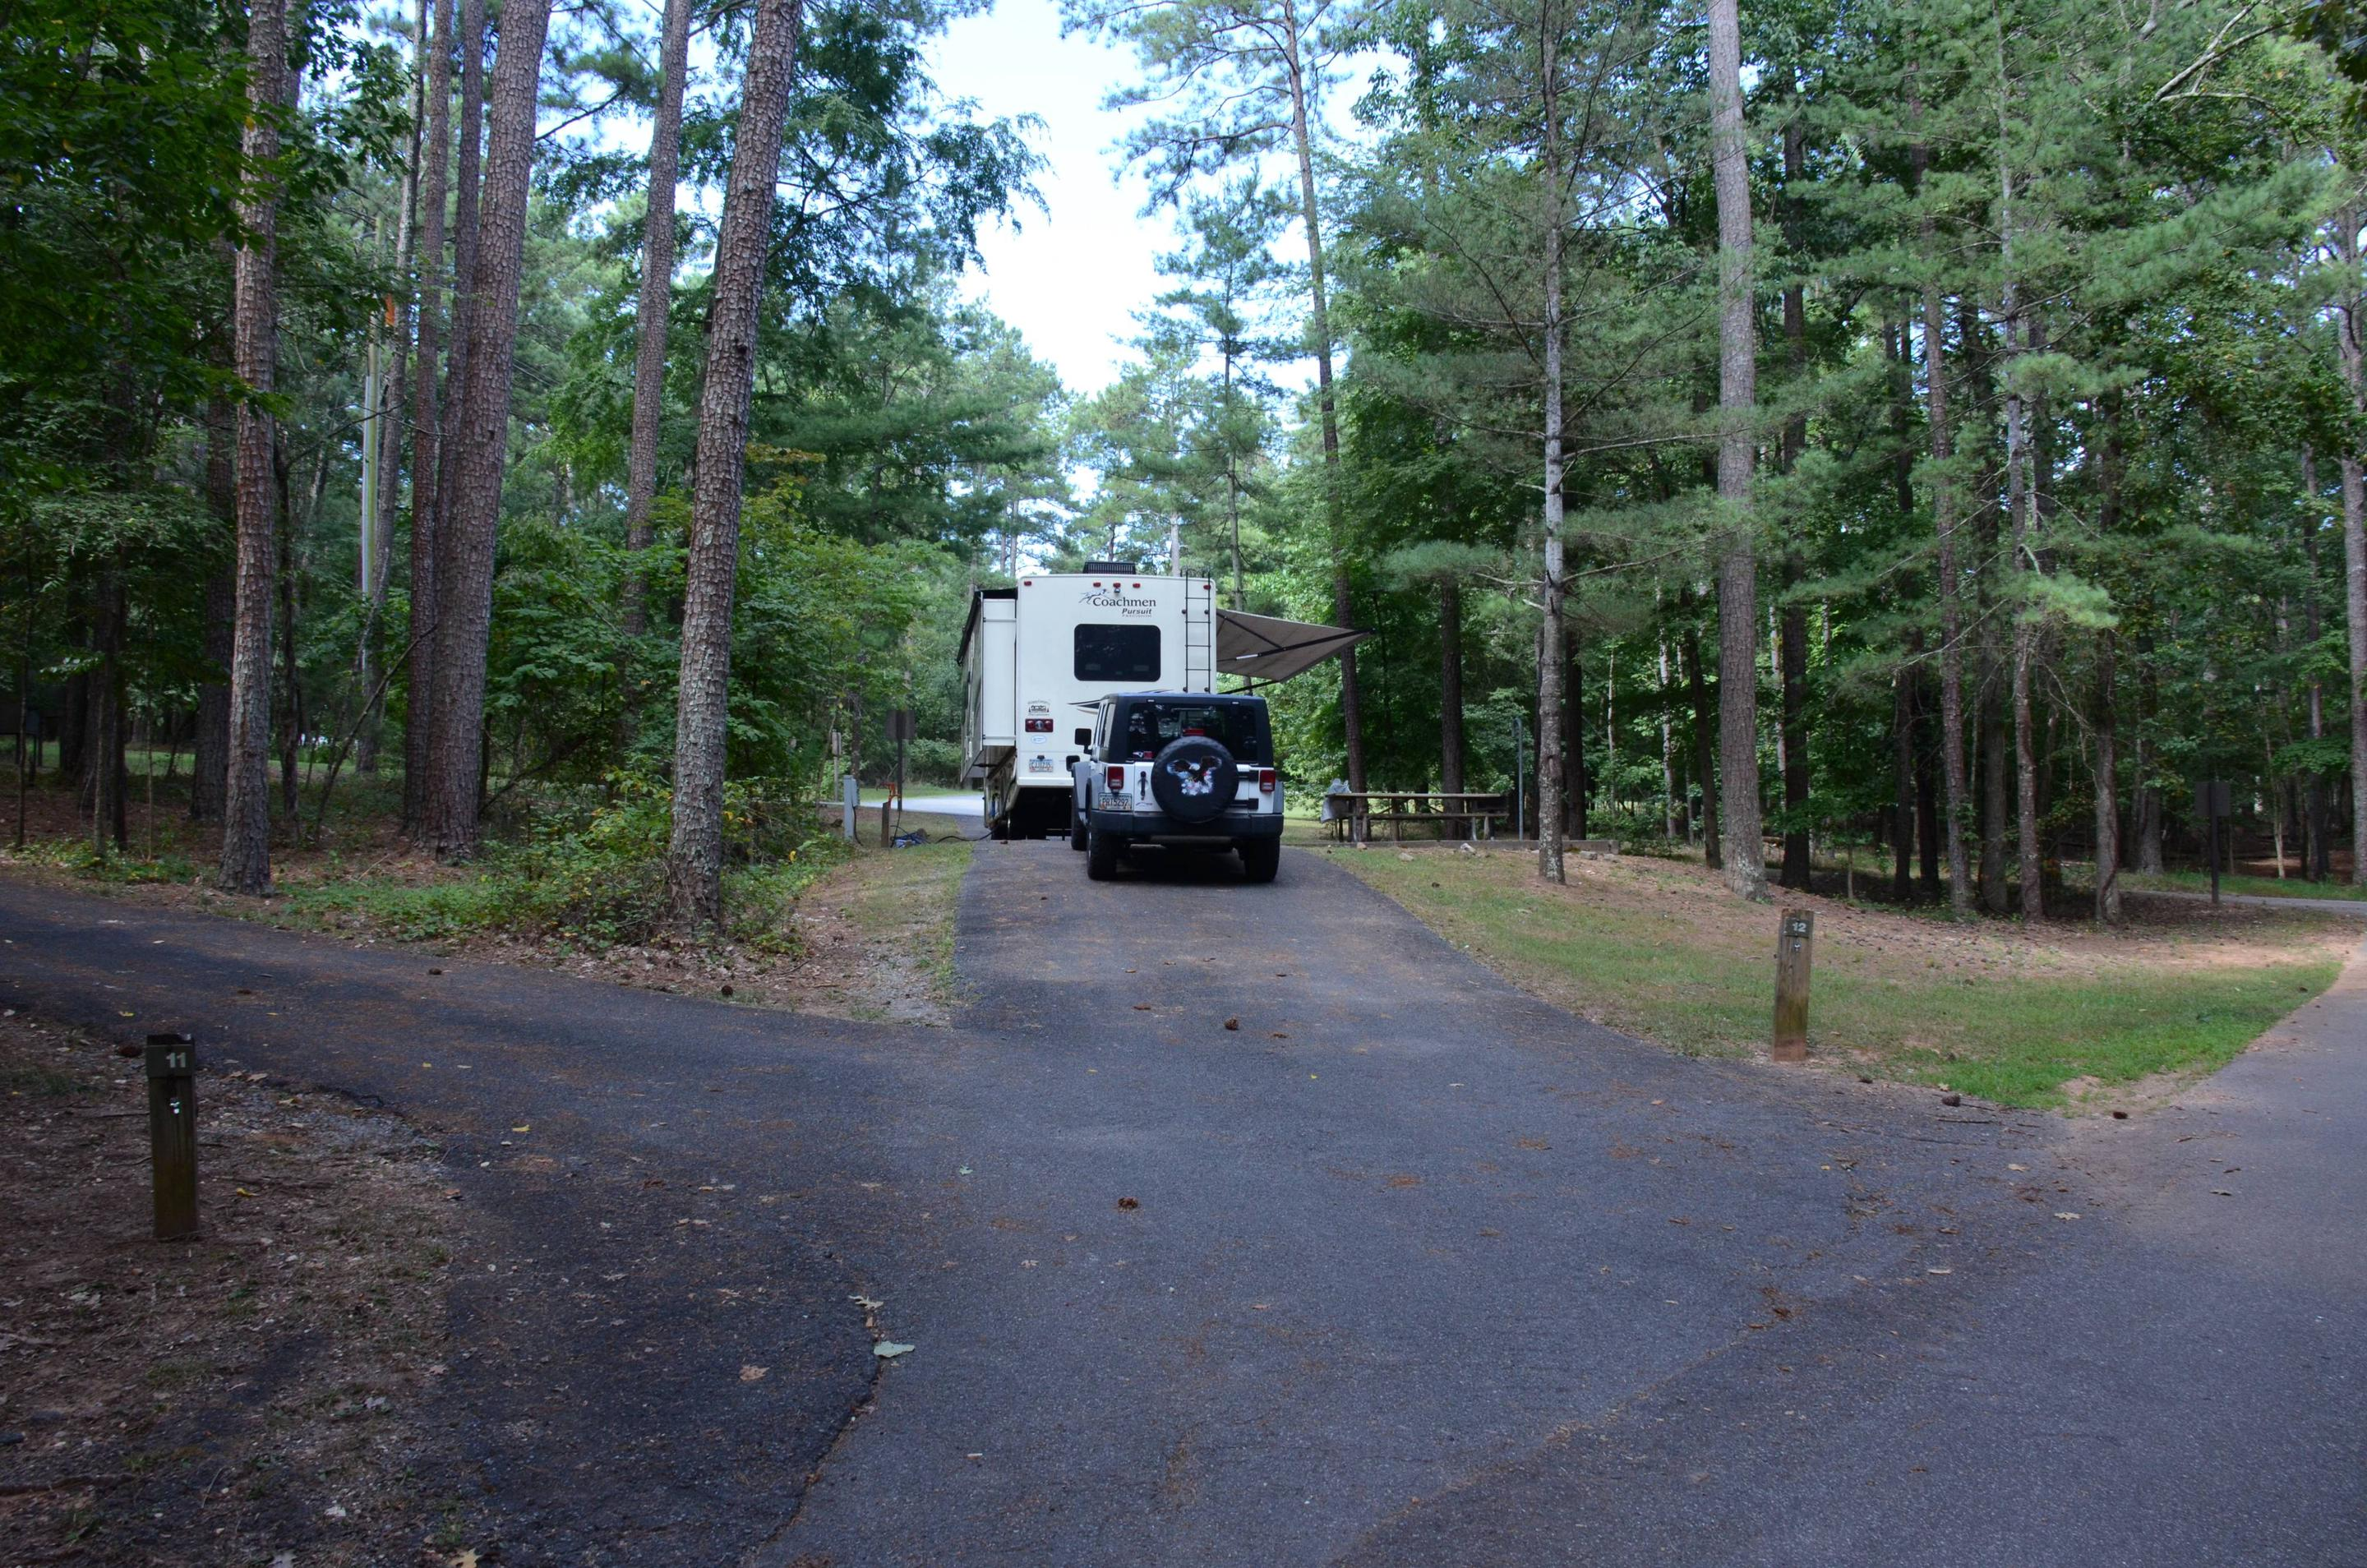 Pull-thru entrance, utilities clearance.McKinney Campground, campsite 12.